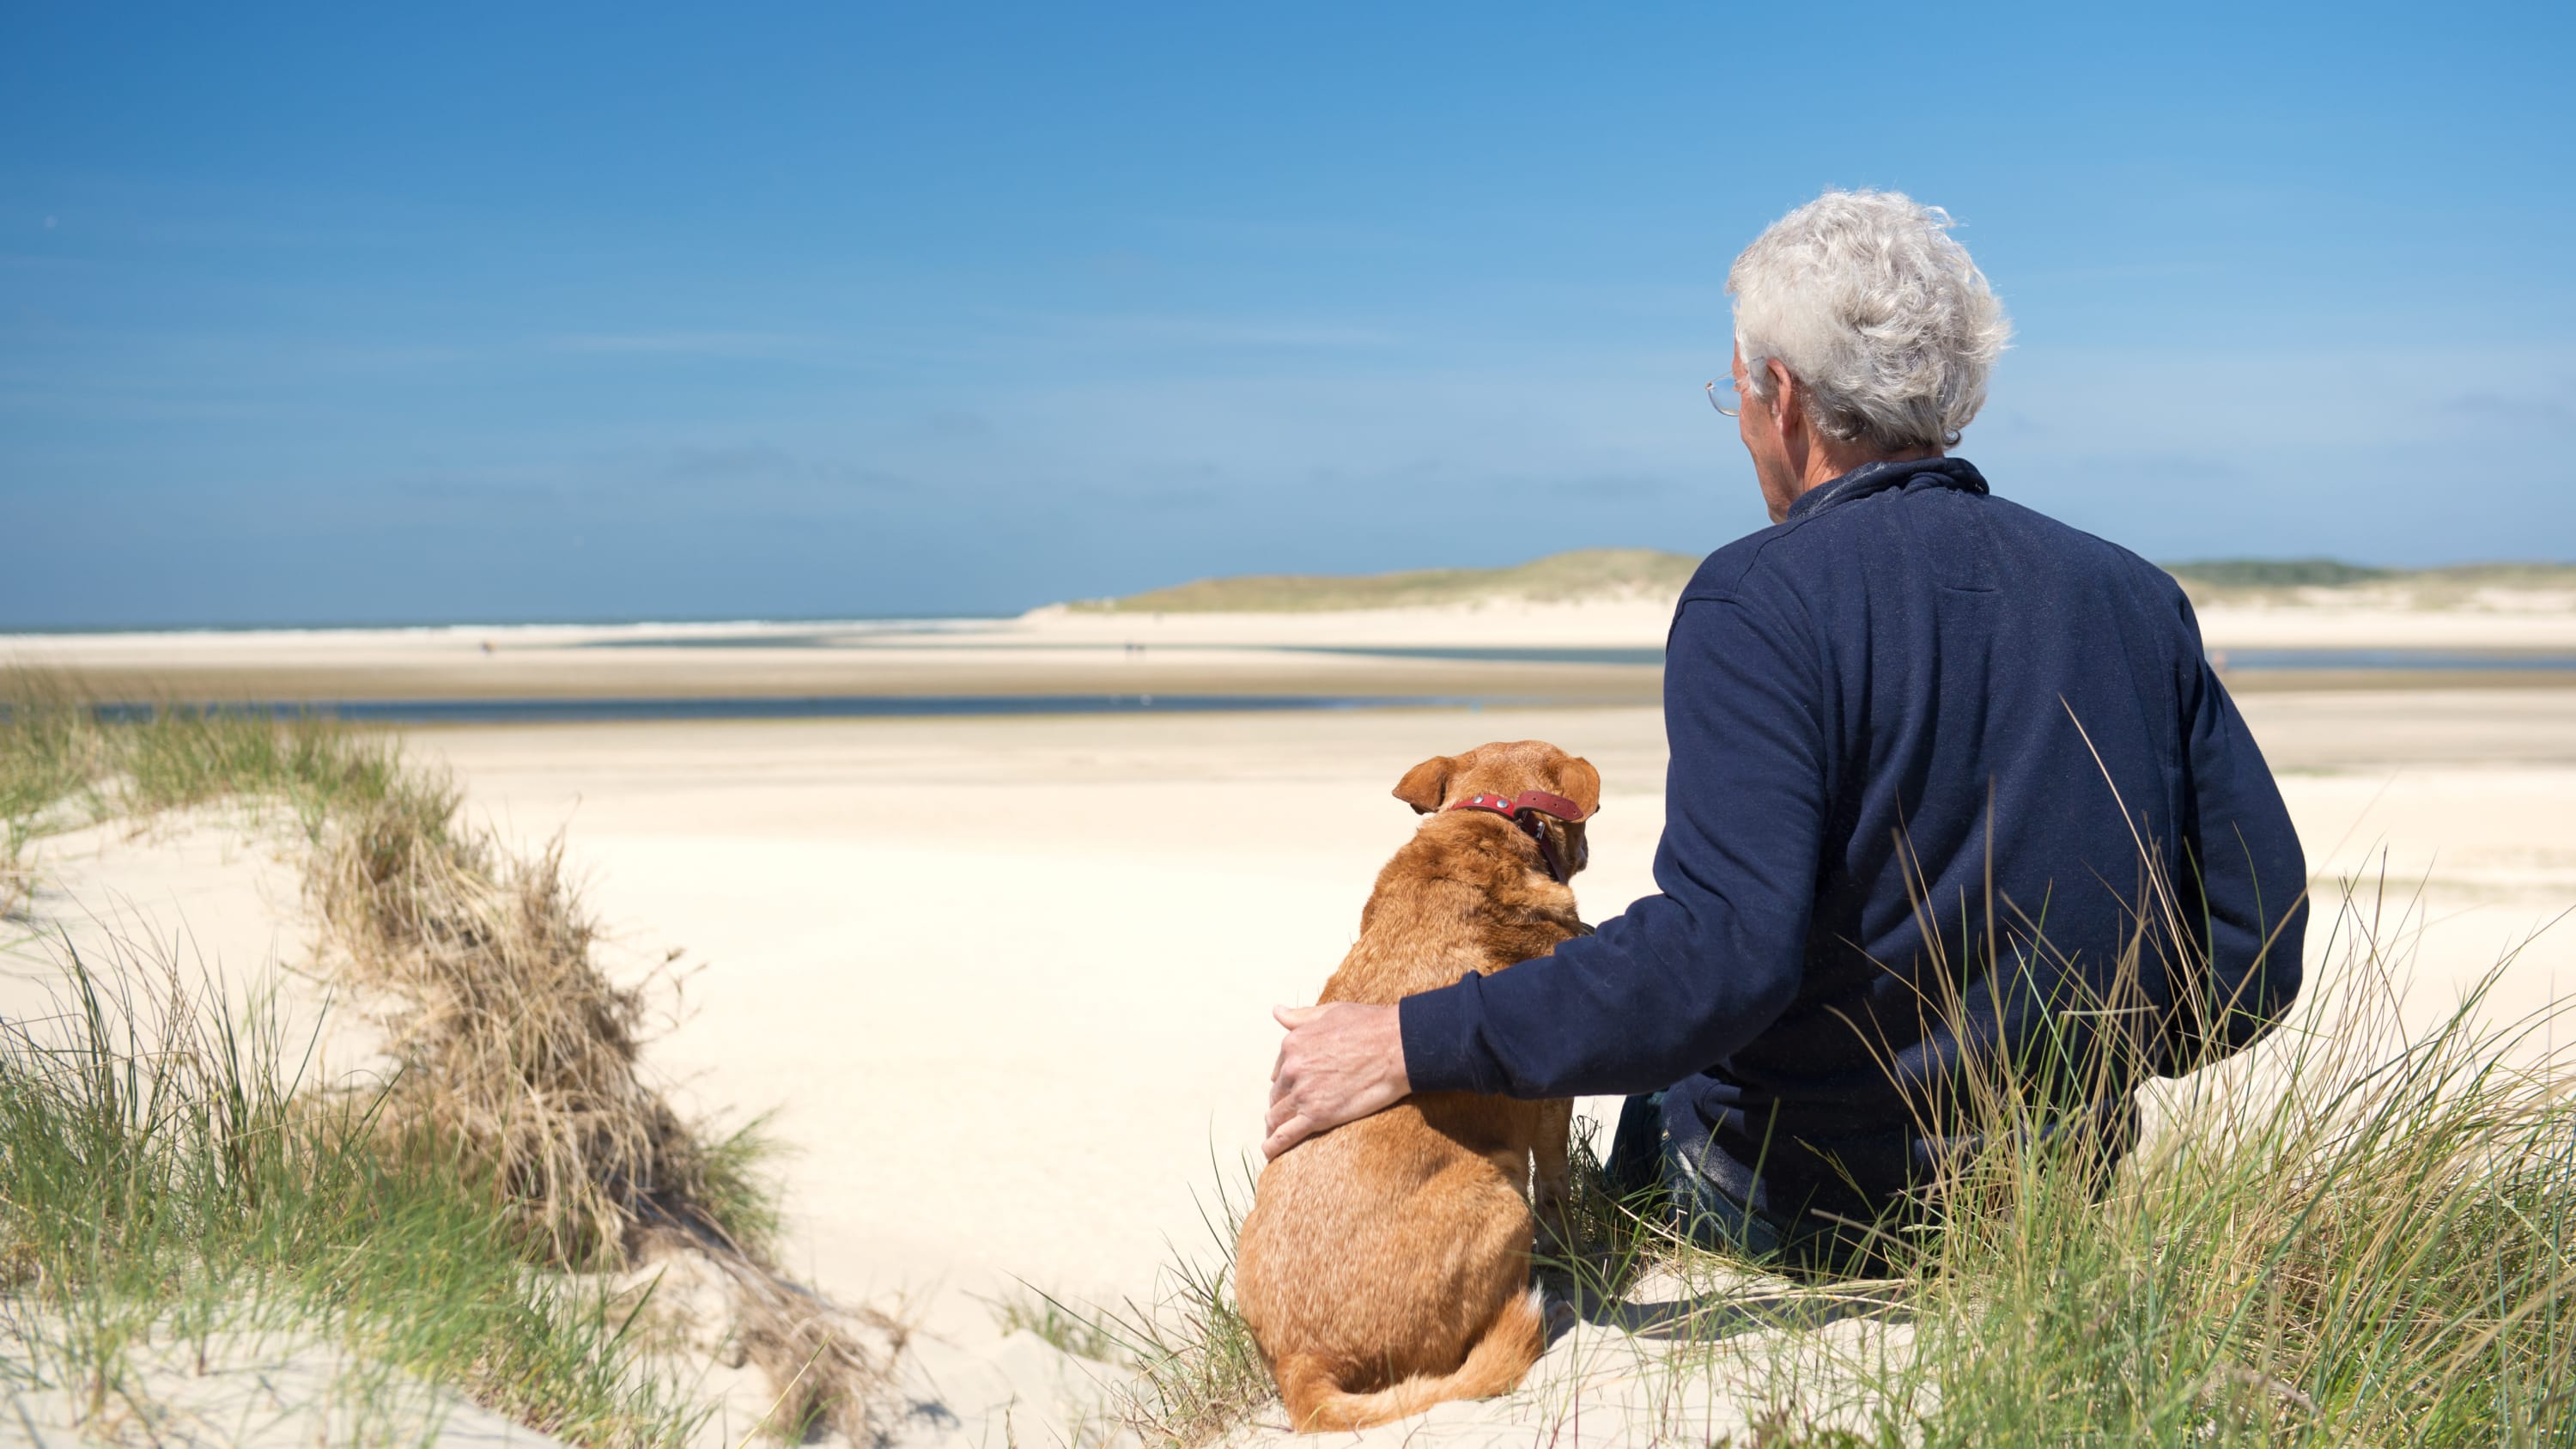 A 60-something year old man, possibly thinking about psoriasis, sits on the beach with his dog.